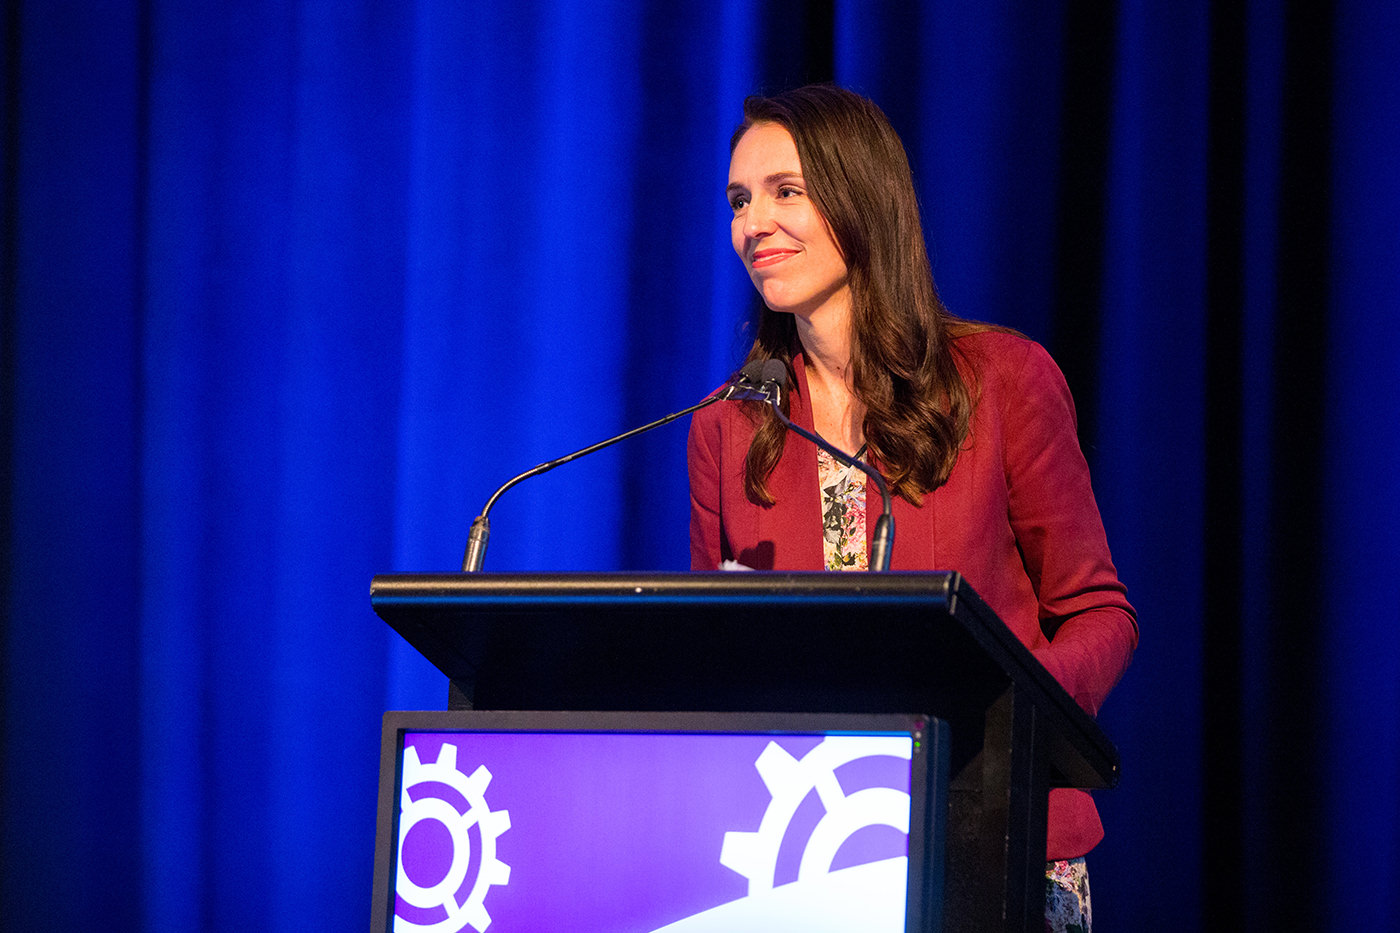 001a_professional_events_photographer_auckland-Jacinda-Ardern_NZ_prime_minister